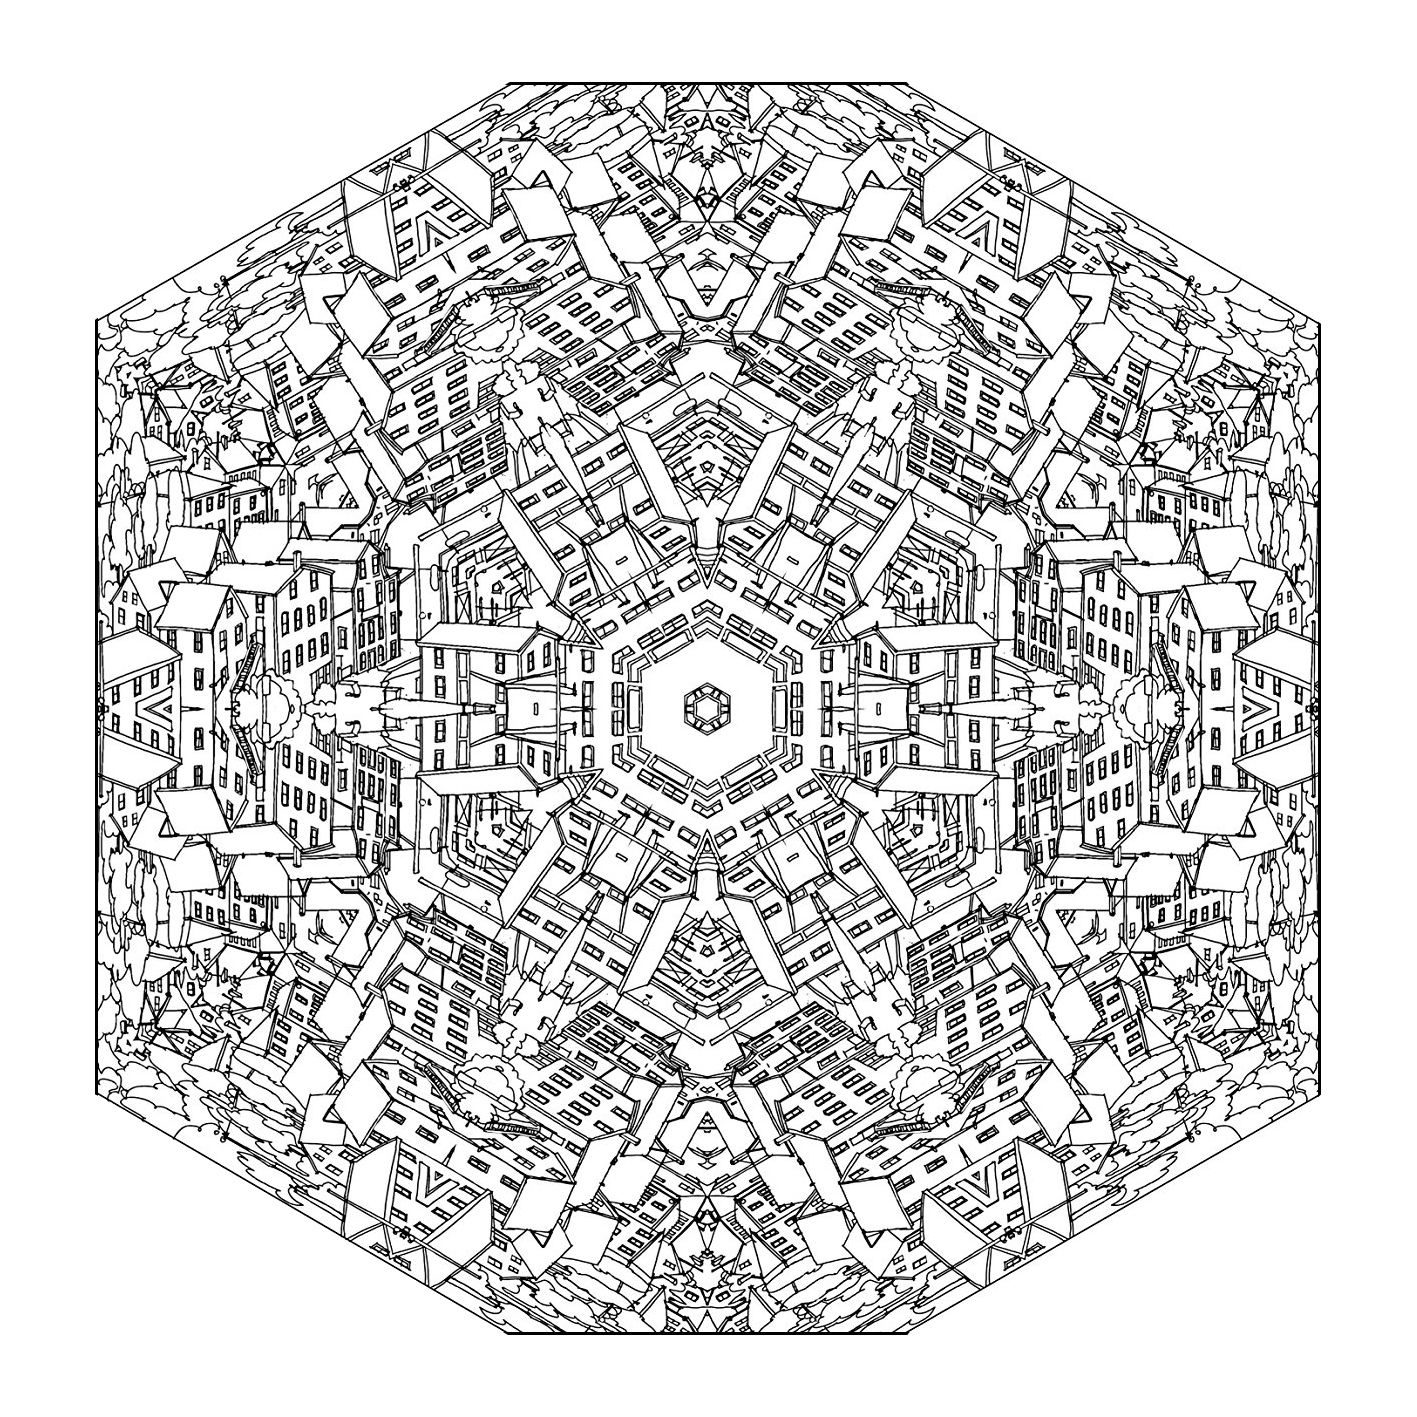 Mandalas Coloring Pages For Adults Fantastic Cities Coloring Book Mandala Coloring Pages Coloring Pages